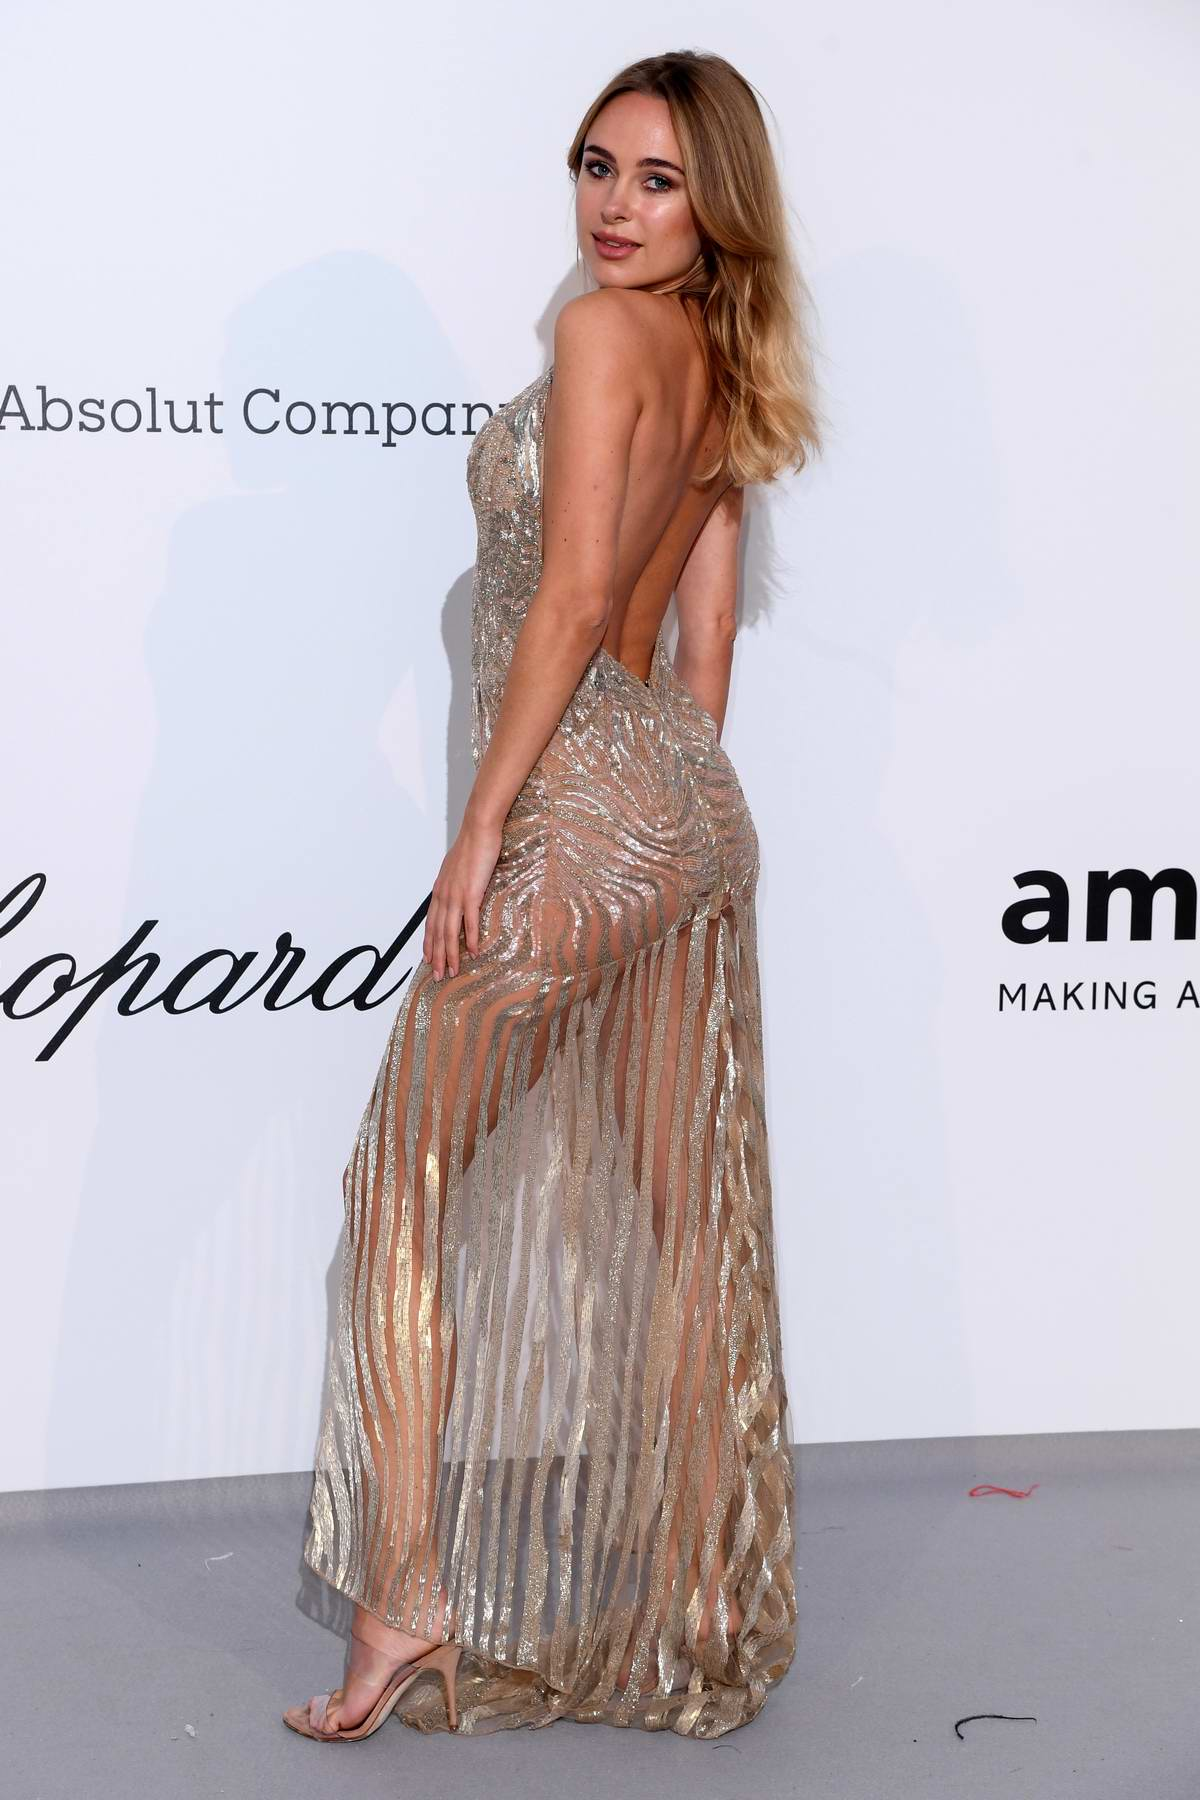 Kimberley Garner attends the 26th amfAR Gala held at Hotel du Cap-Eden-Roc during the 72nd annual Cannes Film Festival in Cannes, France